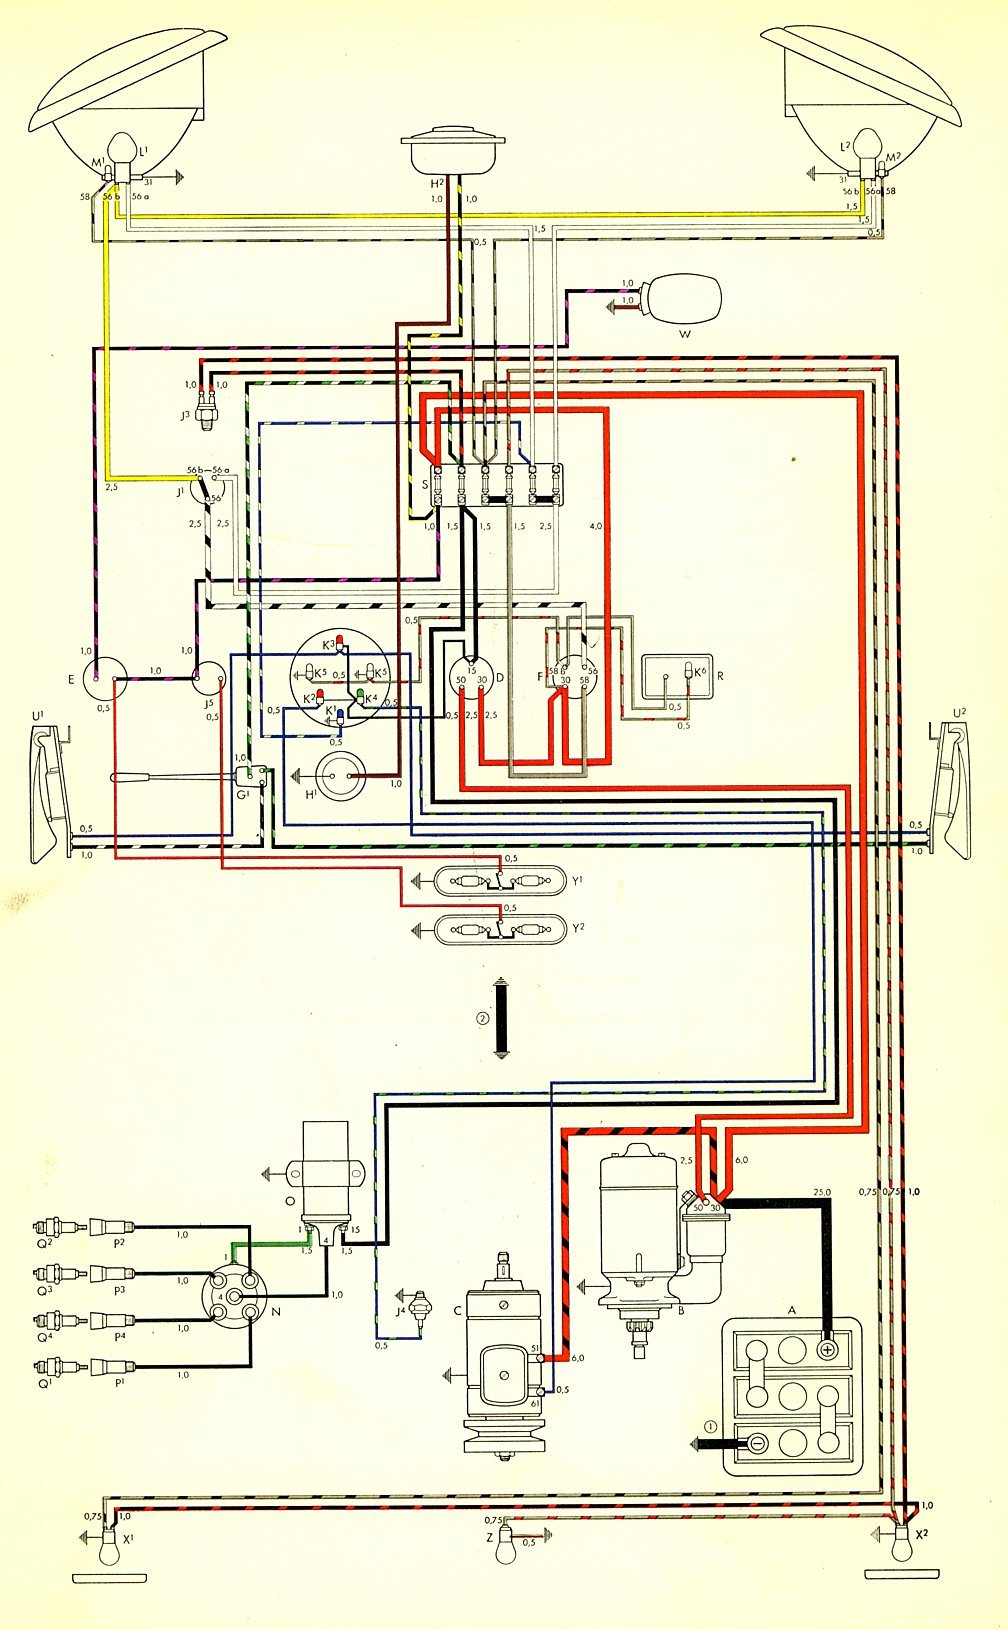 bus_59 bus wiring diagram vw wiring harness diagram \u2022 wiring diagrams j 1971 vw bus wiring diagram at gsmportal.co